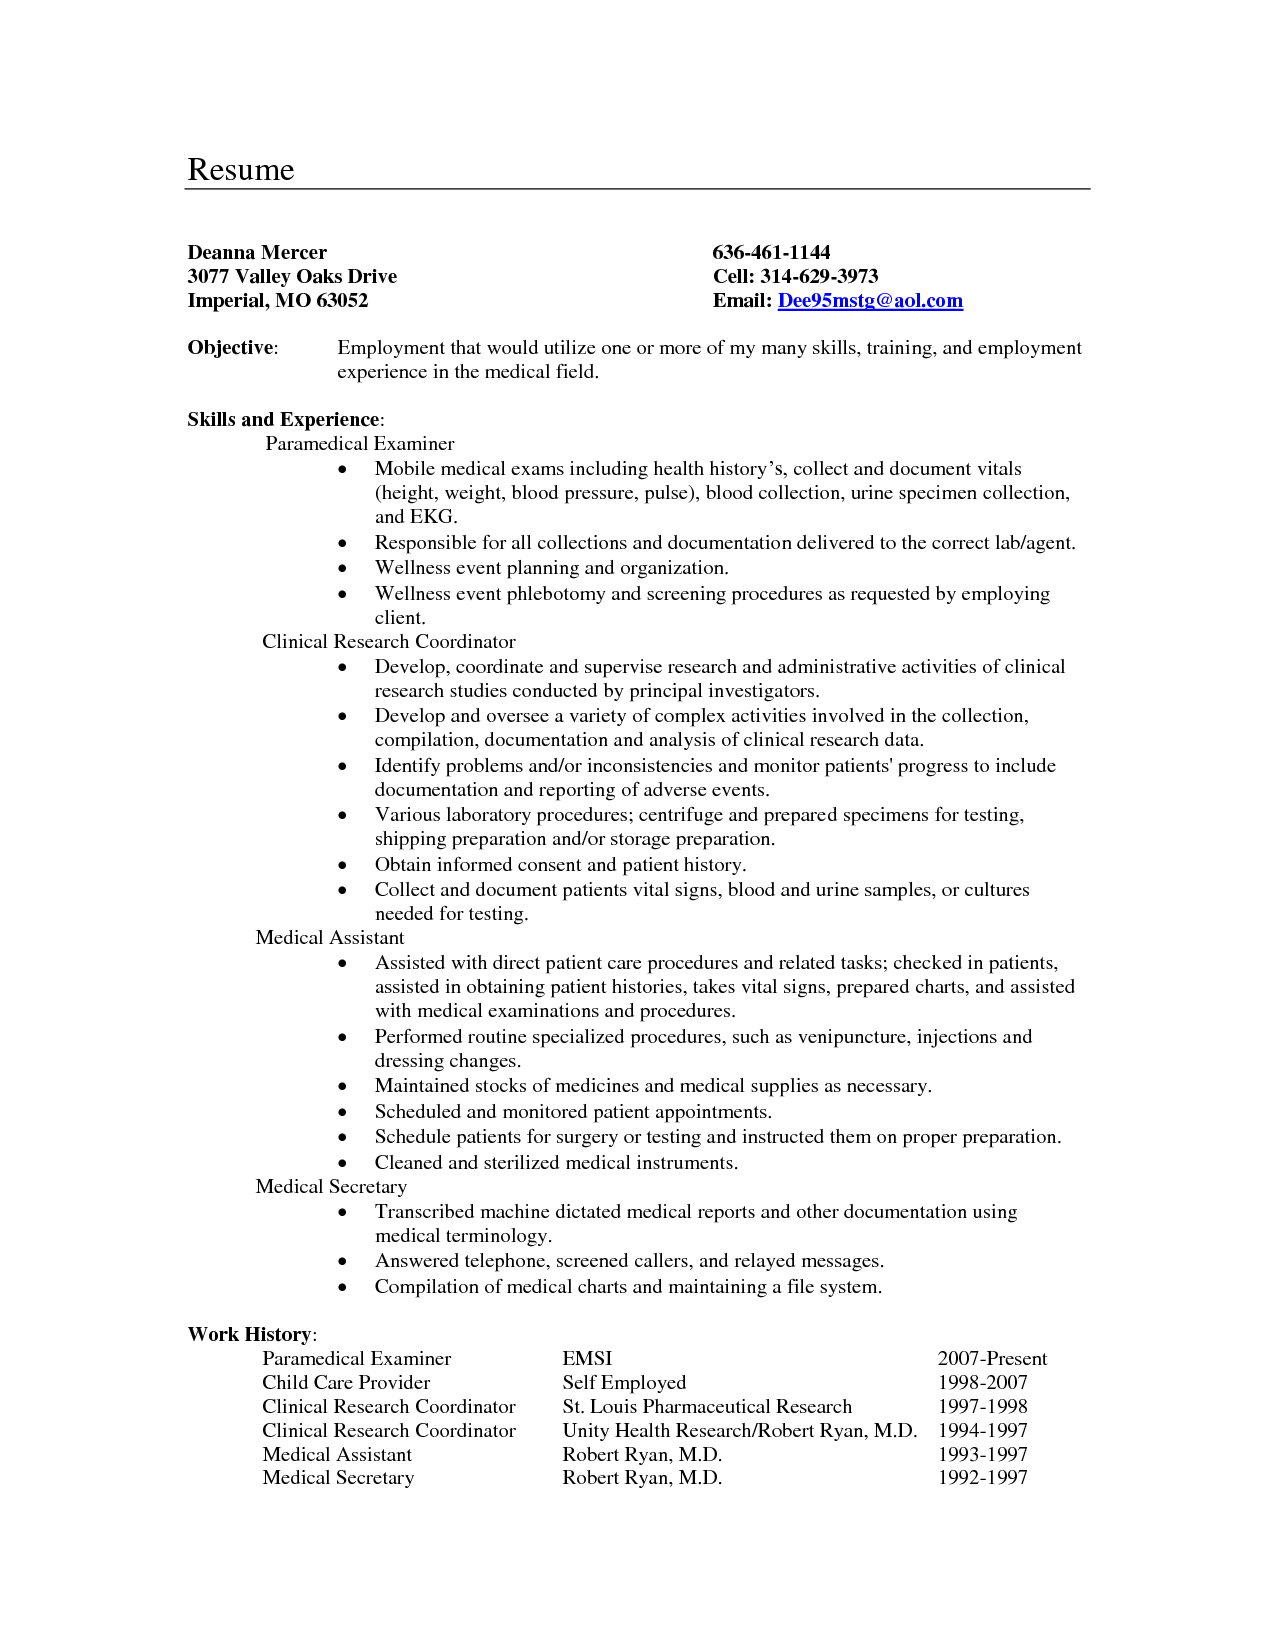 medical secretary resume objective examples | resumes | pinterest